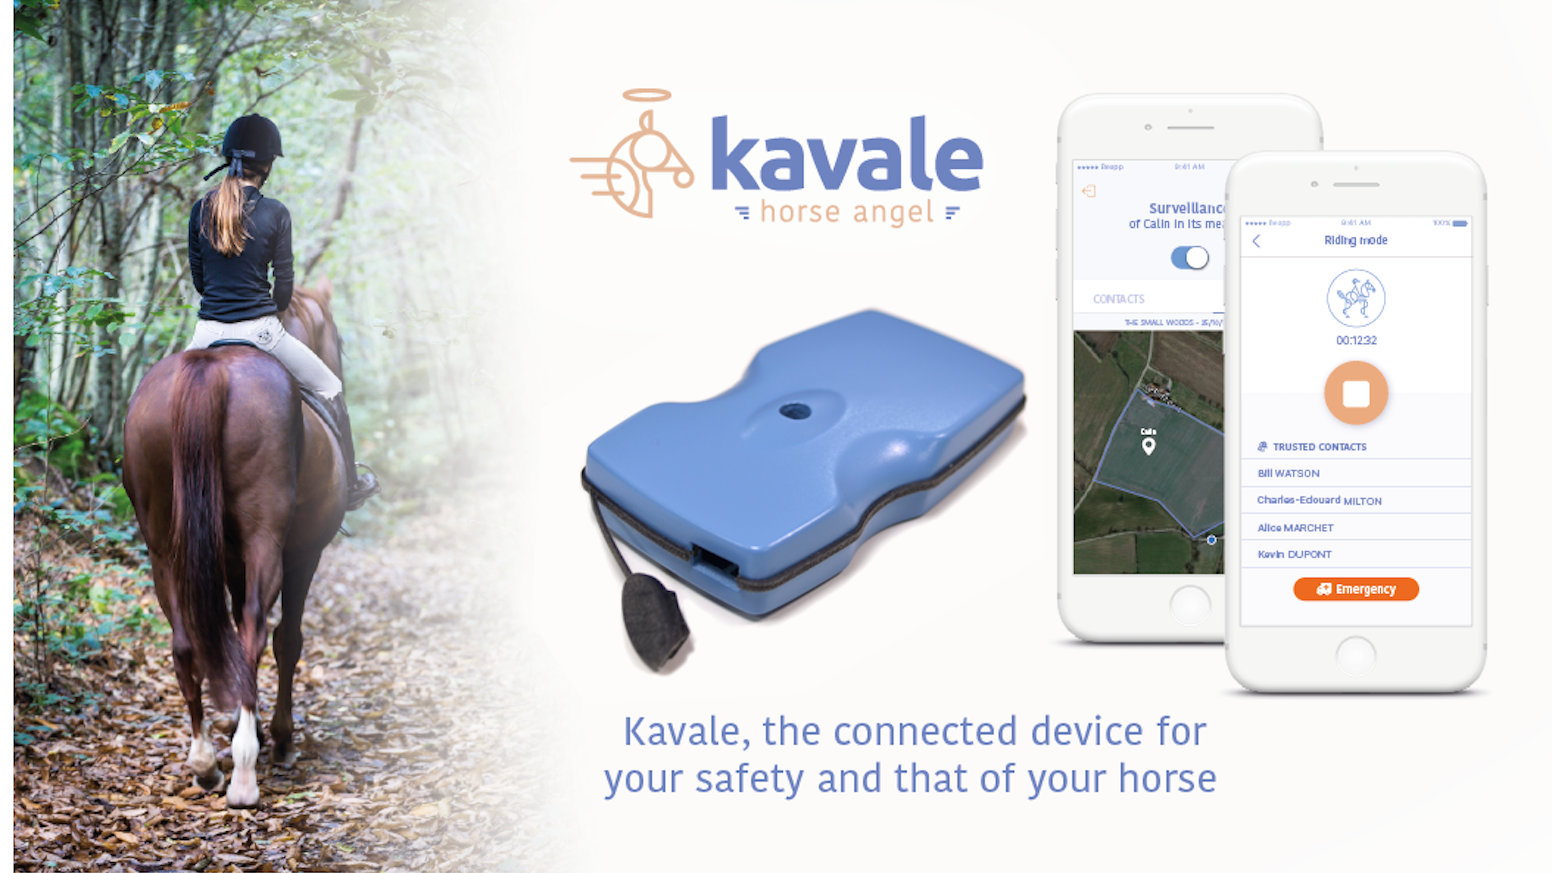 Kavale is the first connected device, linked to a mobile app, aiming at enhancing the safety of the horse and its rider.